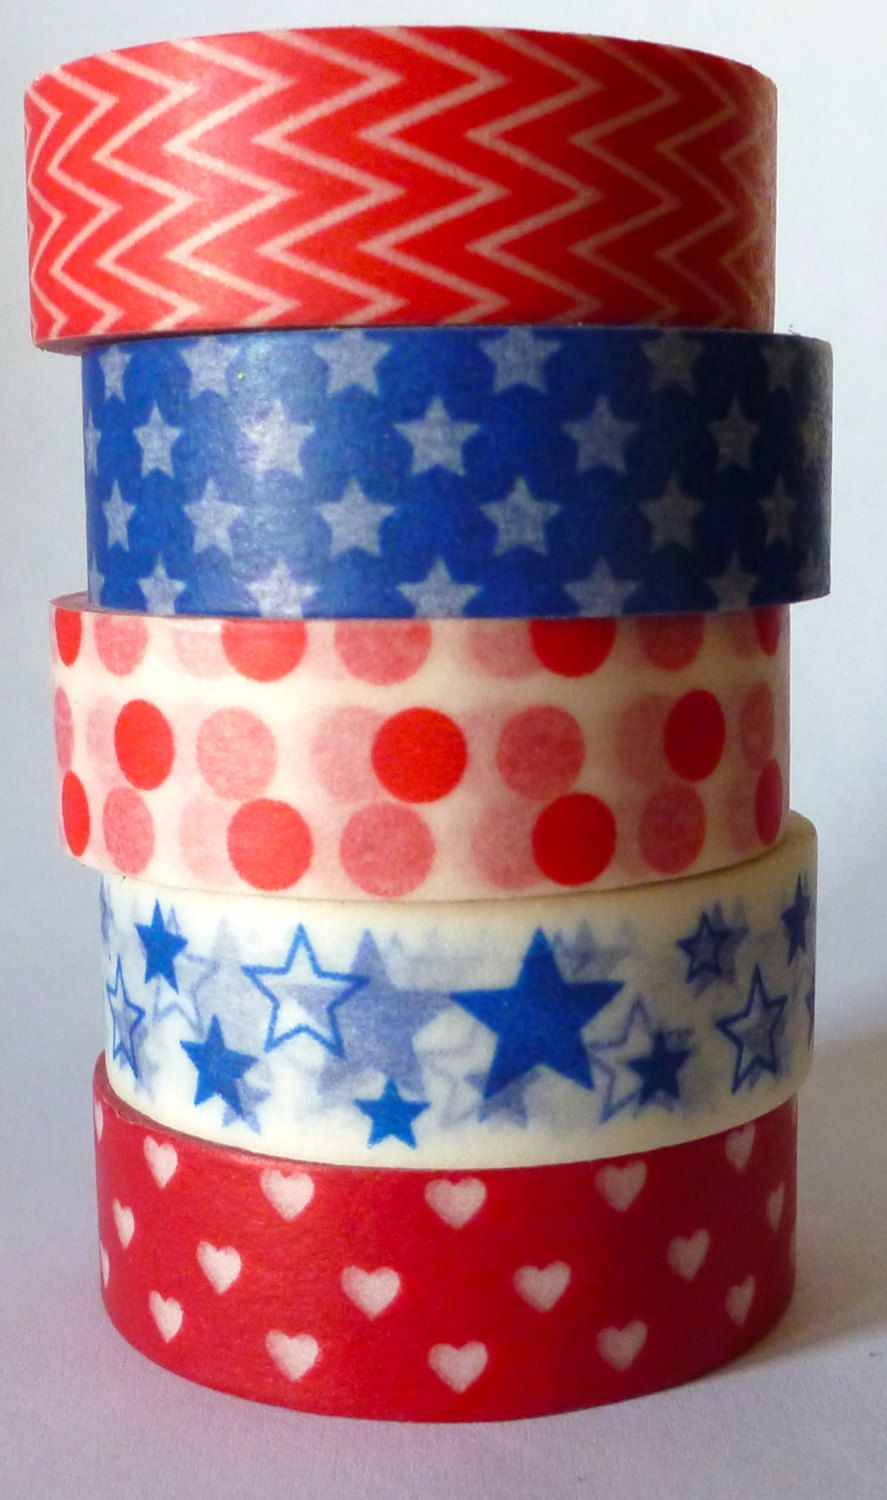 Red White Blue Washi Tape Set 5 Rolls 4th Of July By Sweetmline 13 95 With Images Washi Tape Set Washi Tape Projects Washi Tape Crafts